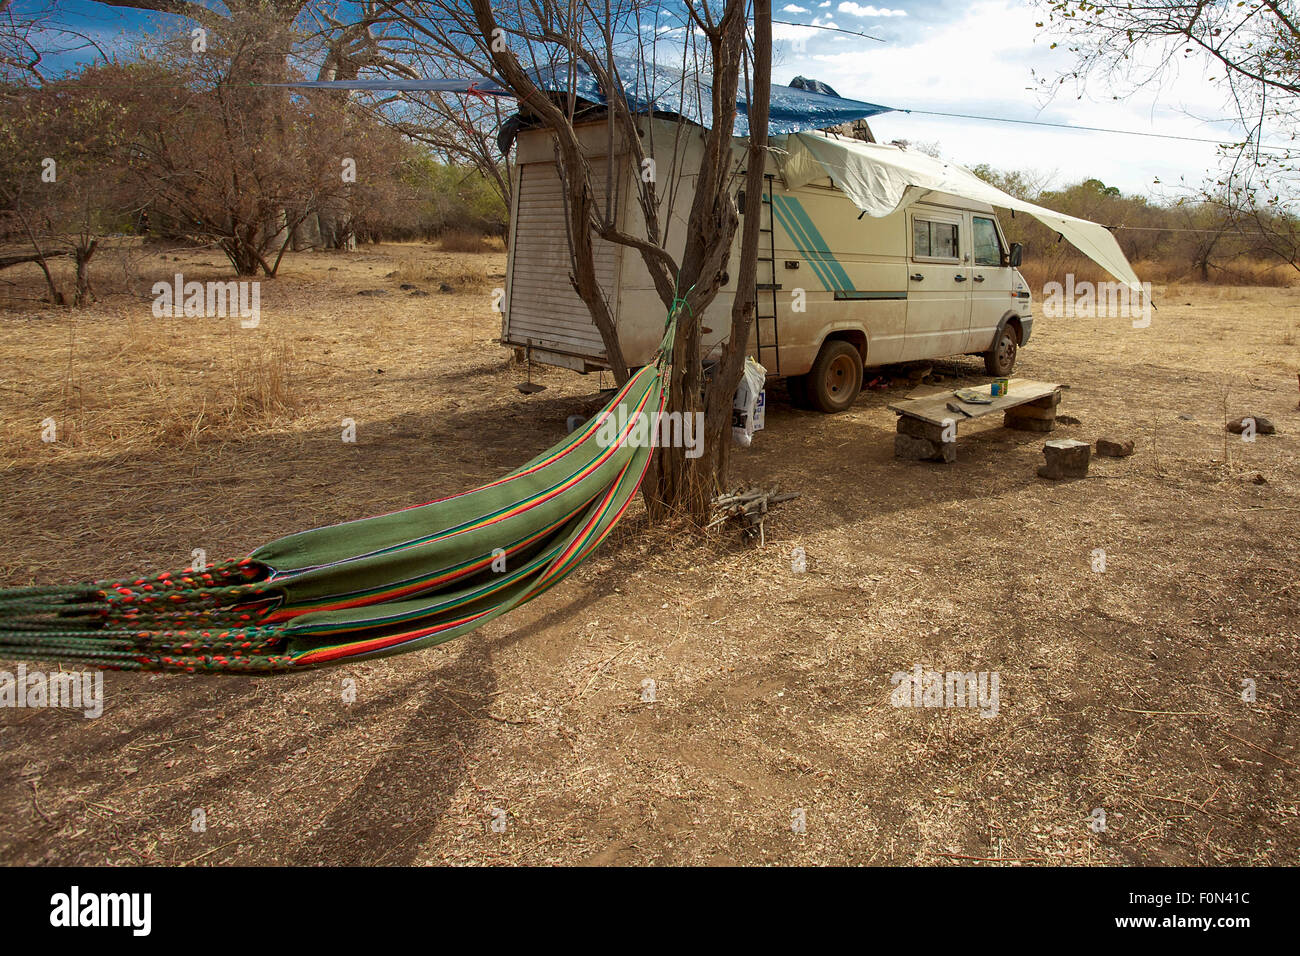 camper in the bush with hammock ready kayes in mali camper in the bush with hammock ready kayes in mali stock photo      rh   alamy